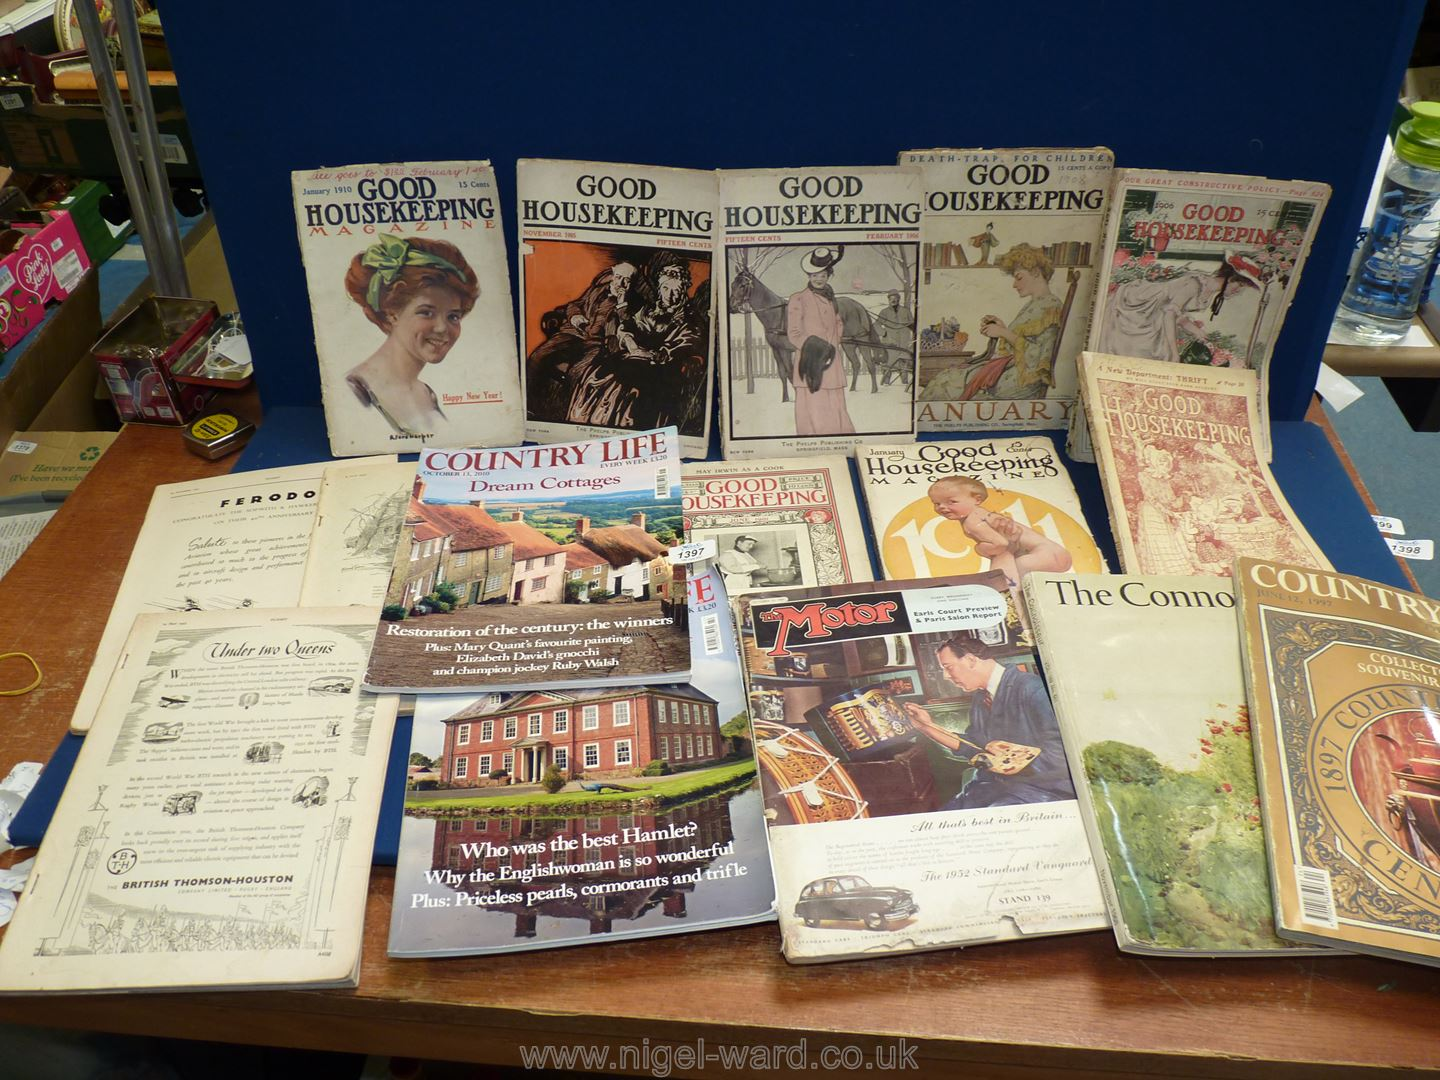 A quantity of Good Housekeeping magazines - eight monthly issues between 1901 and 1911,